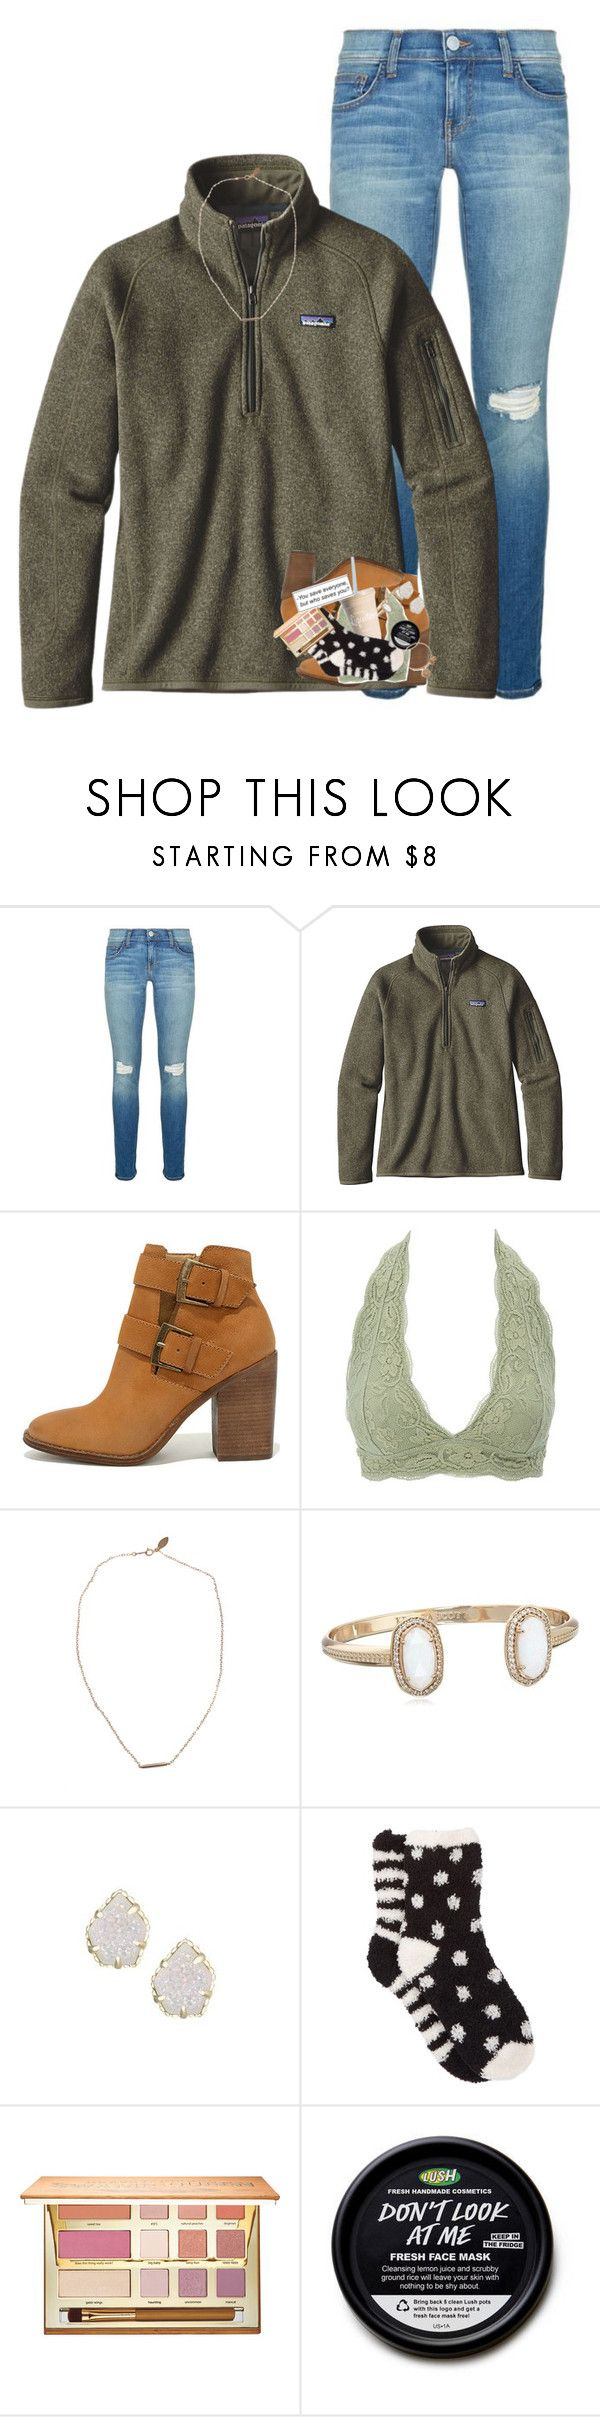 """""""Everyone copying my style ."""" by morgankailah ❤ liked on Polyvore featuring Rebecca Minkoff, Patagonia, Steve Madden, Charlotte Russe, Devon Pavlovits, Kendra Scott, Free Press, tarte and Alex and Ani"""